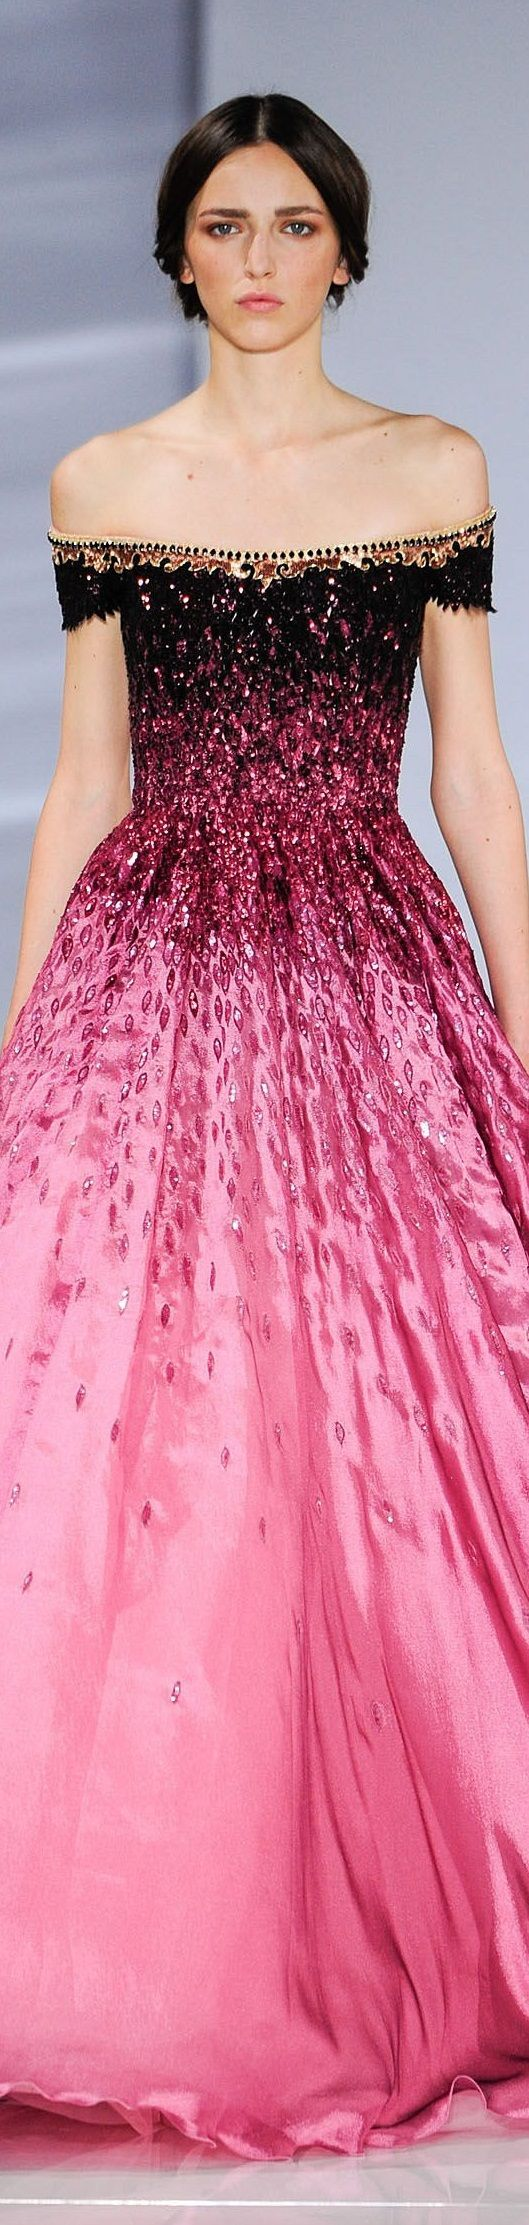 66 best Formal Colors: Ombre images on Pinterest | Evening gowns ...